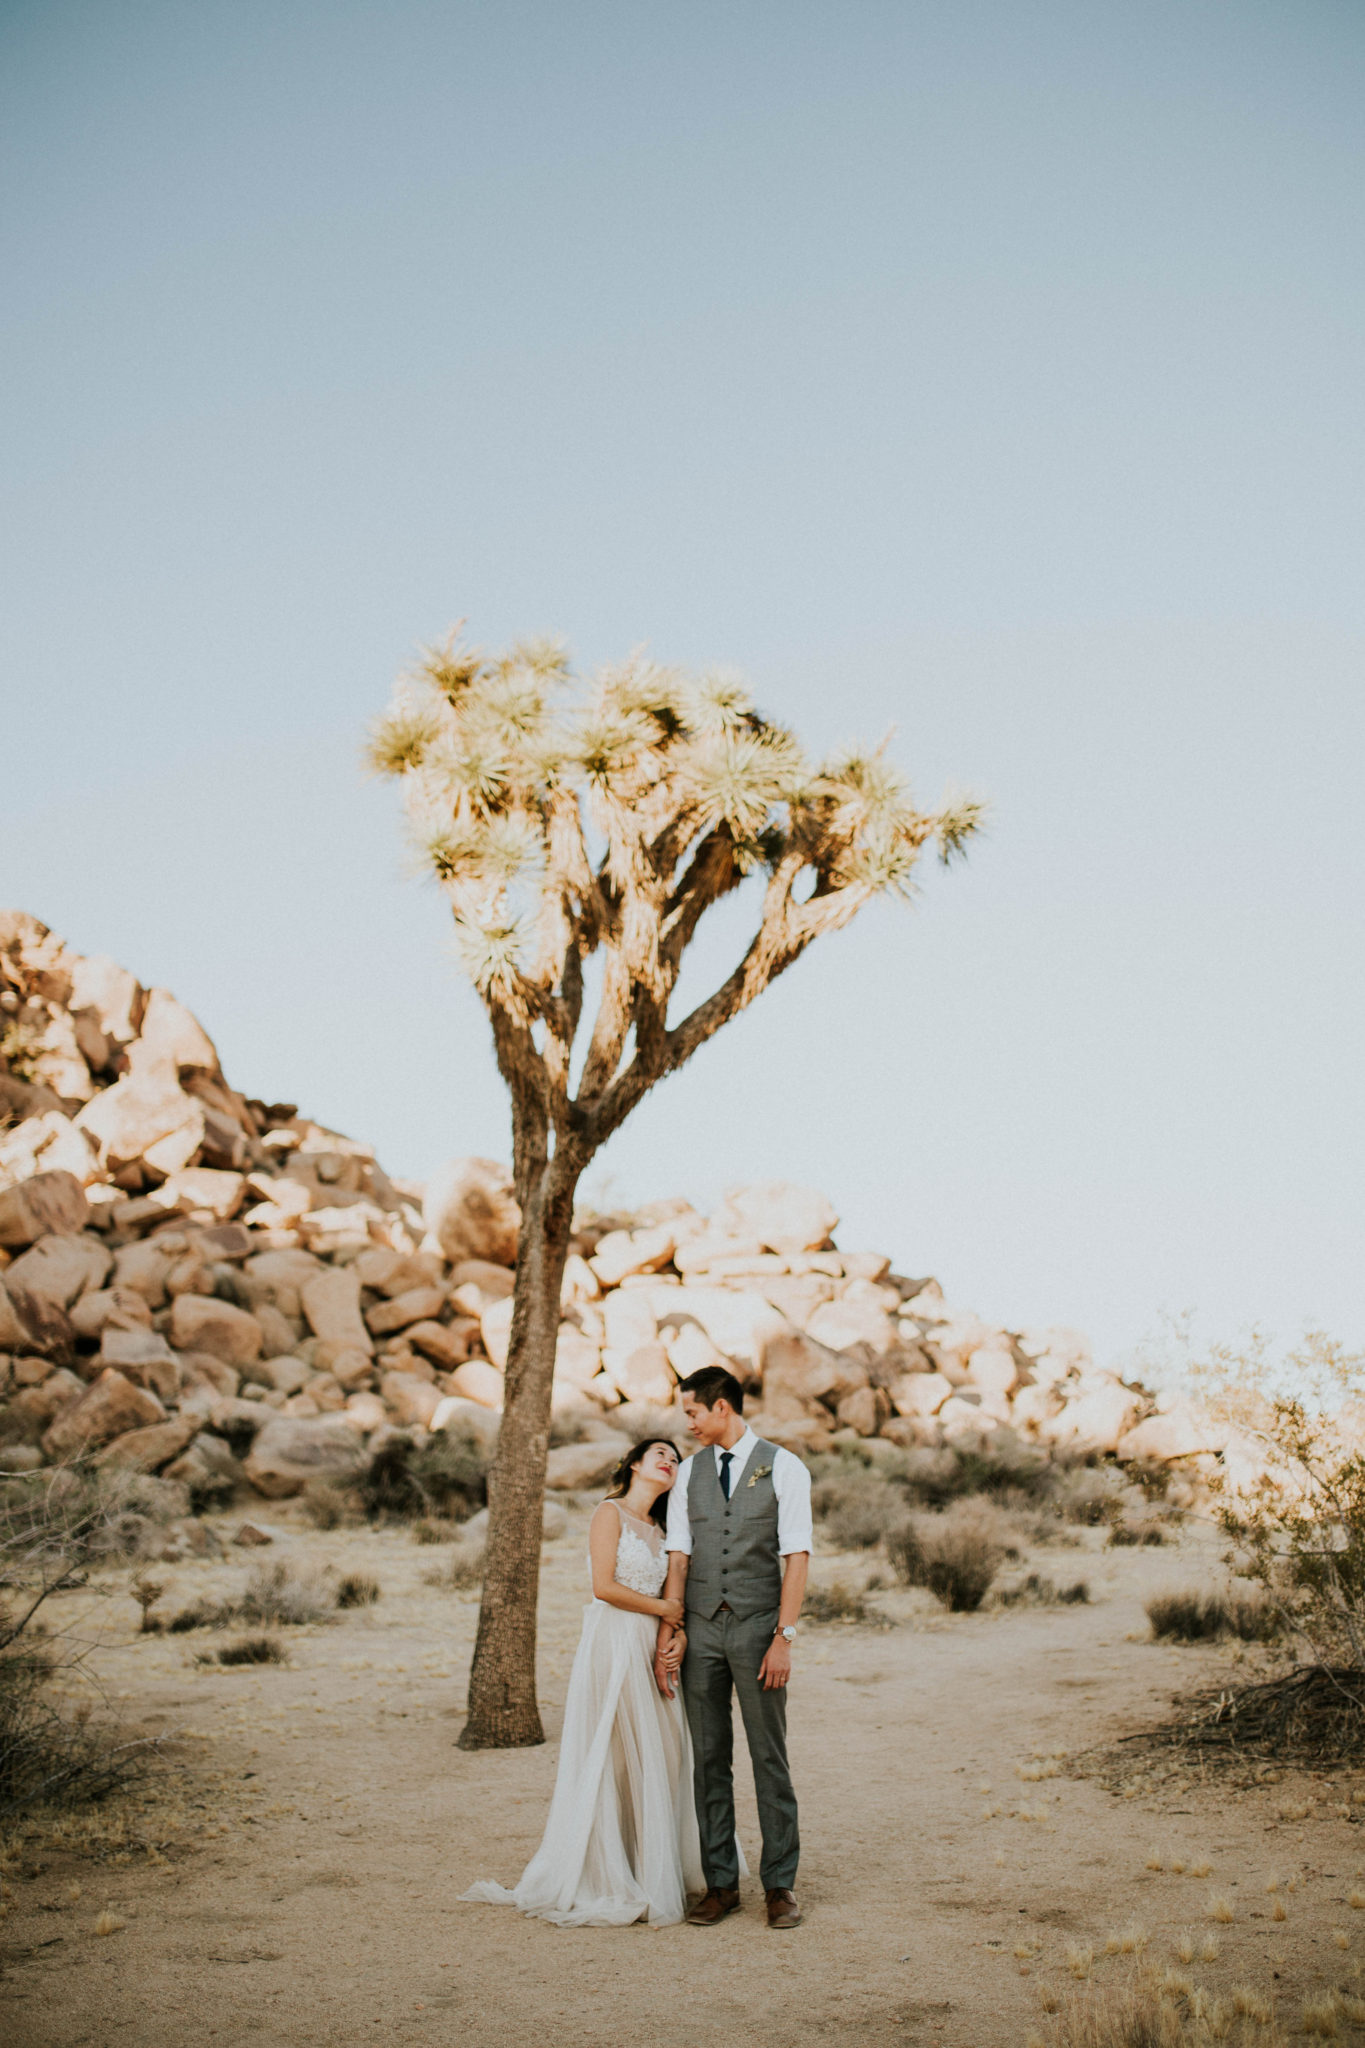 Mandy & Joey Joshua Tree Elopement California Wedding Photographer-144